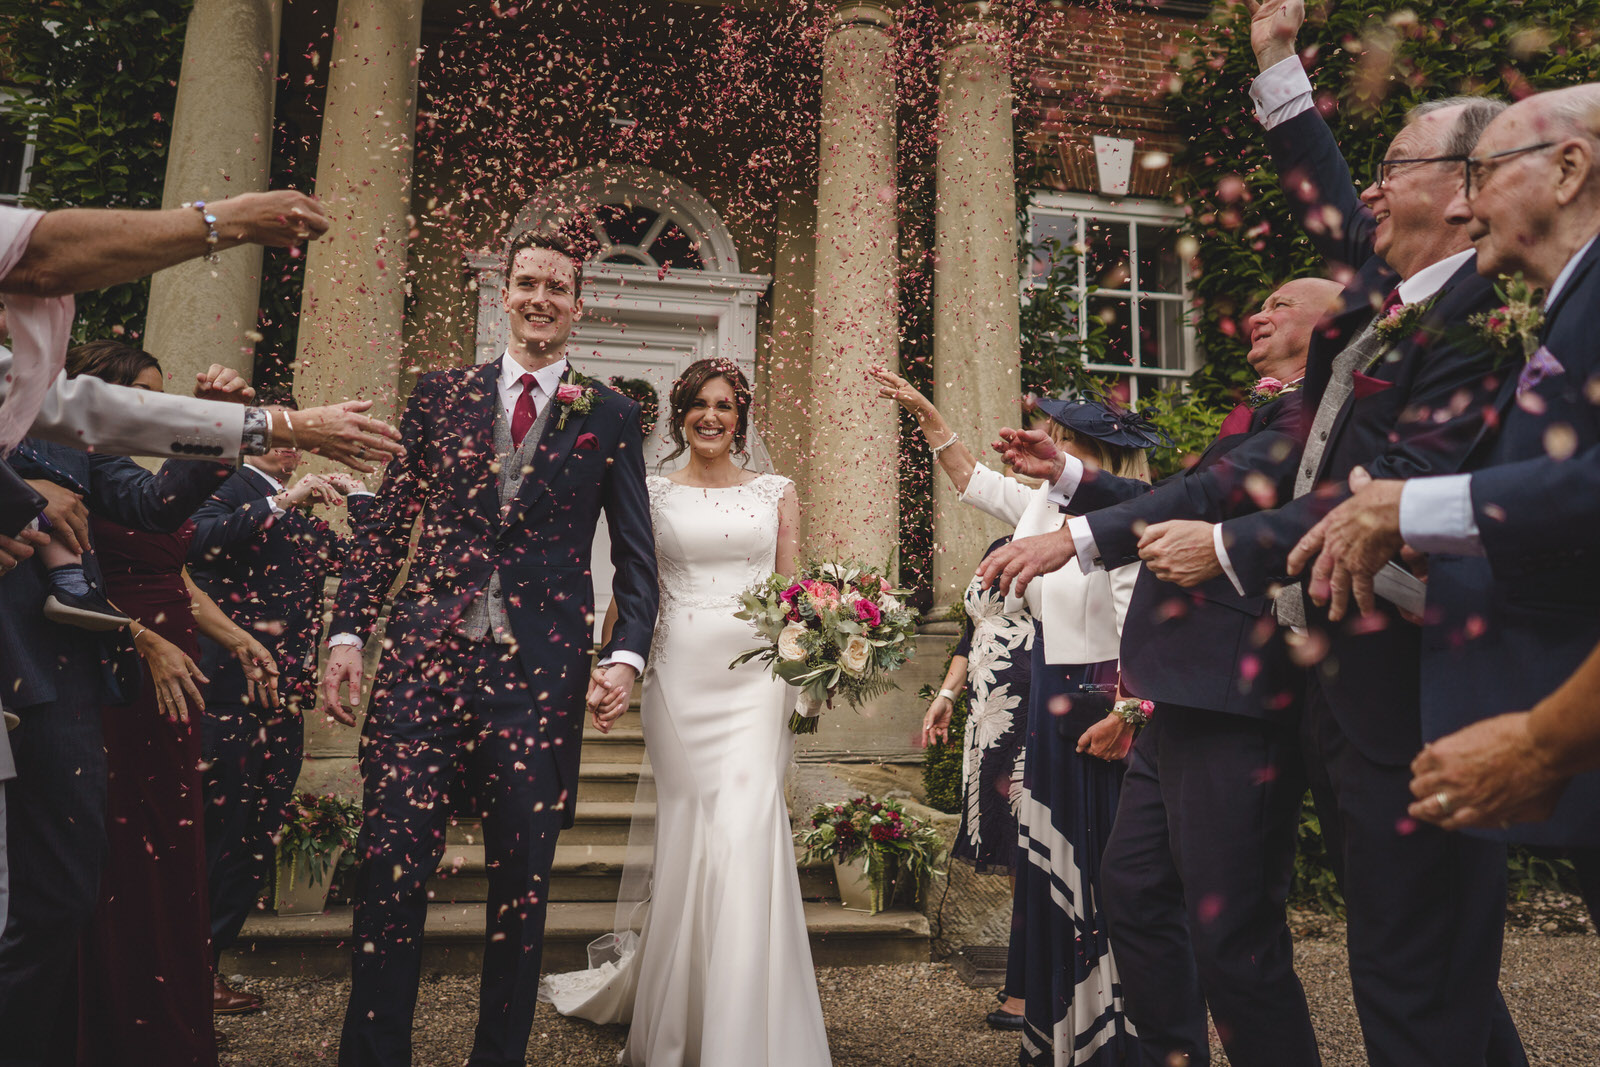 Iscoyd park wedding photographer in Shropshire with guests throwing confetti